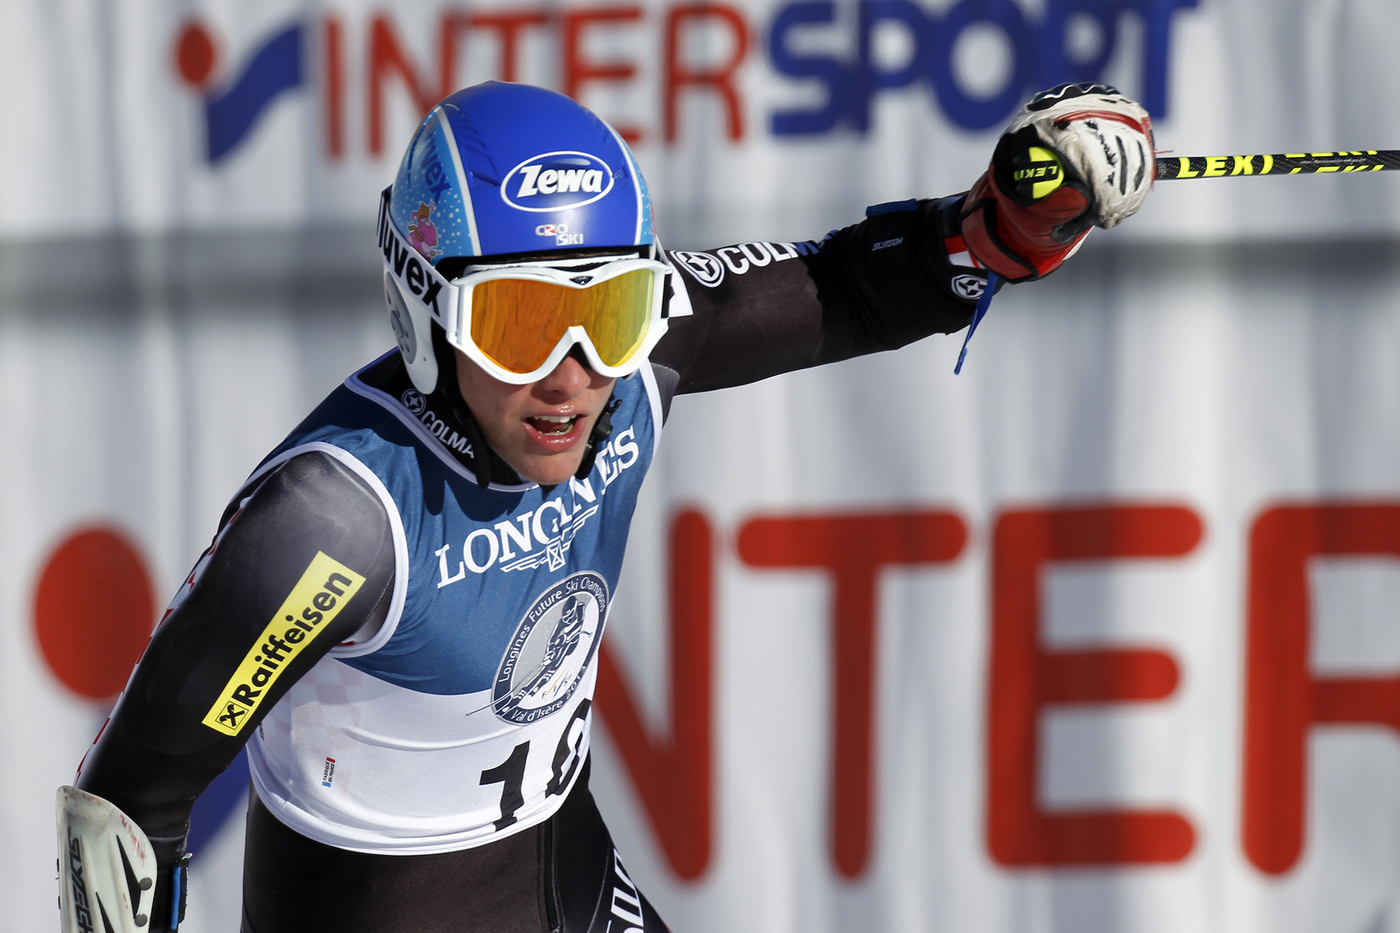 Longines Alpine Skiing Event: The Longines Future Ski Champion 2013 5